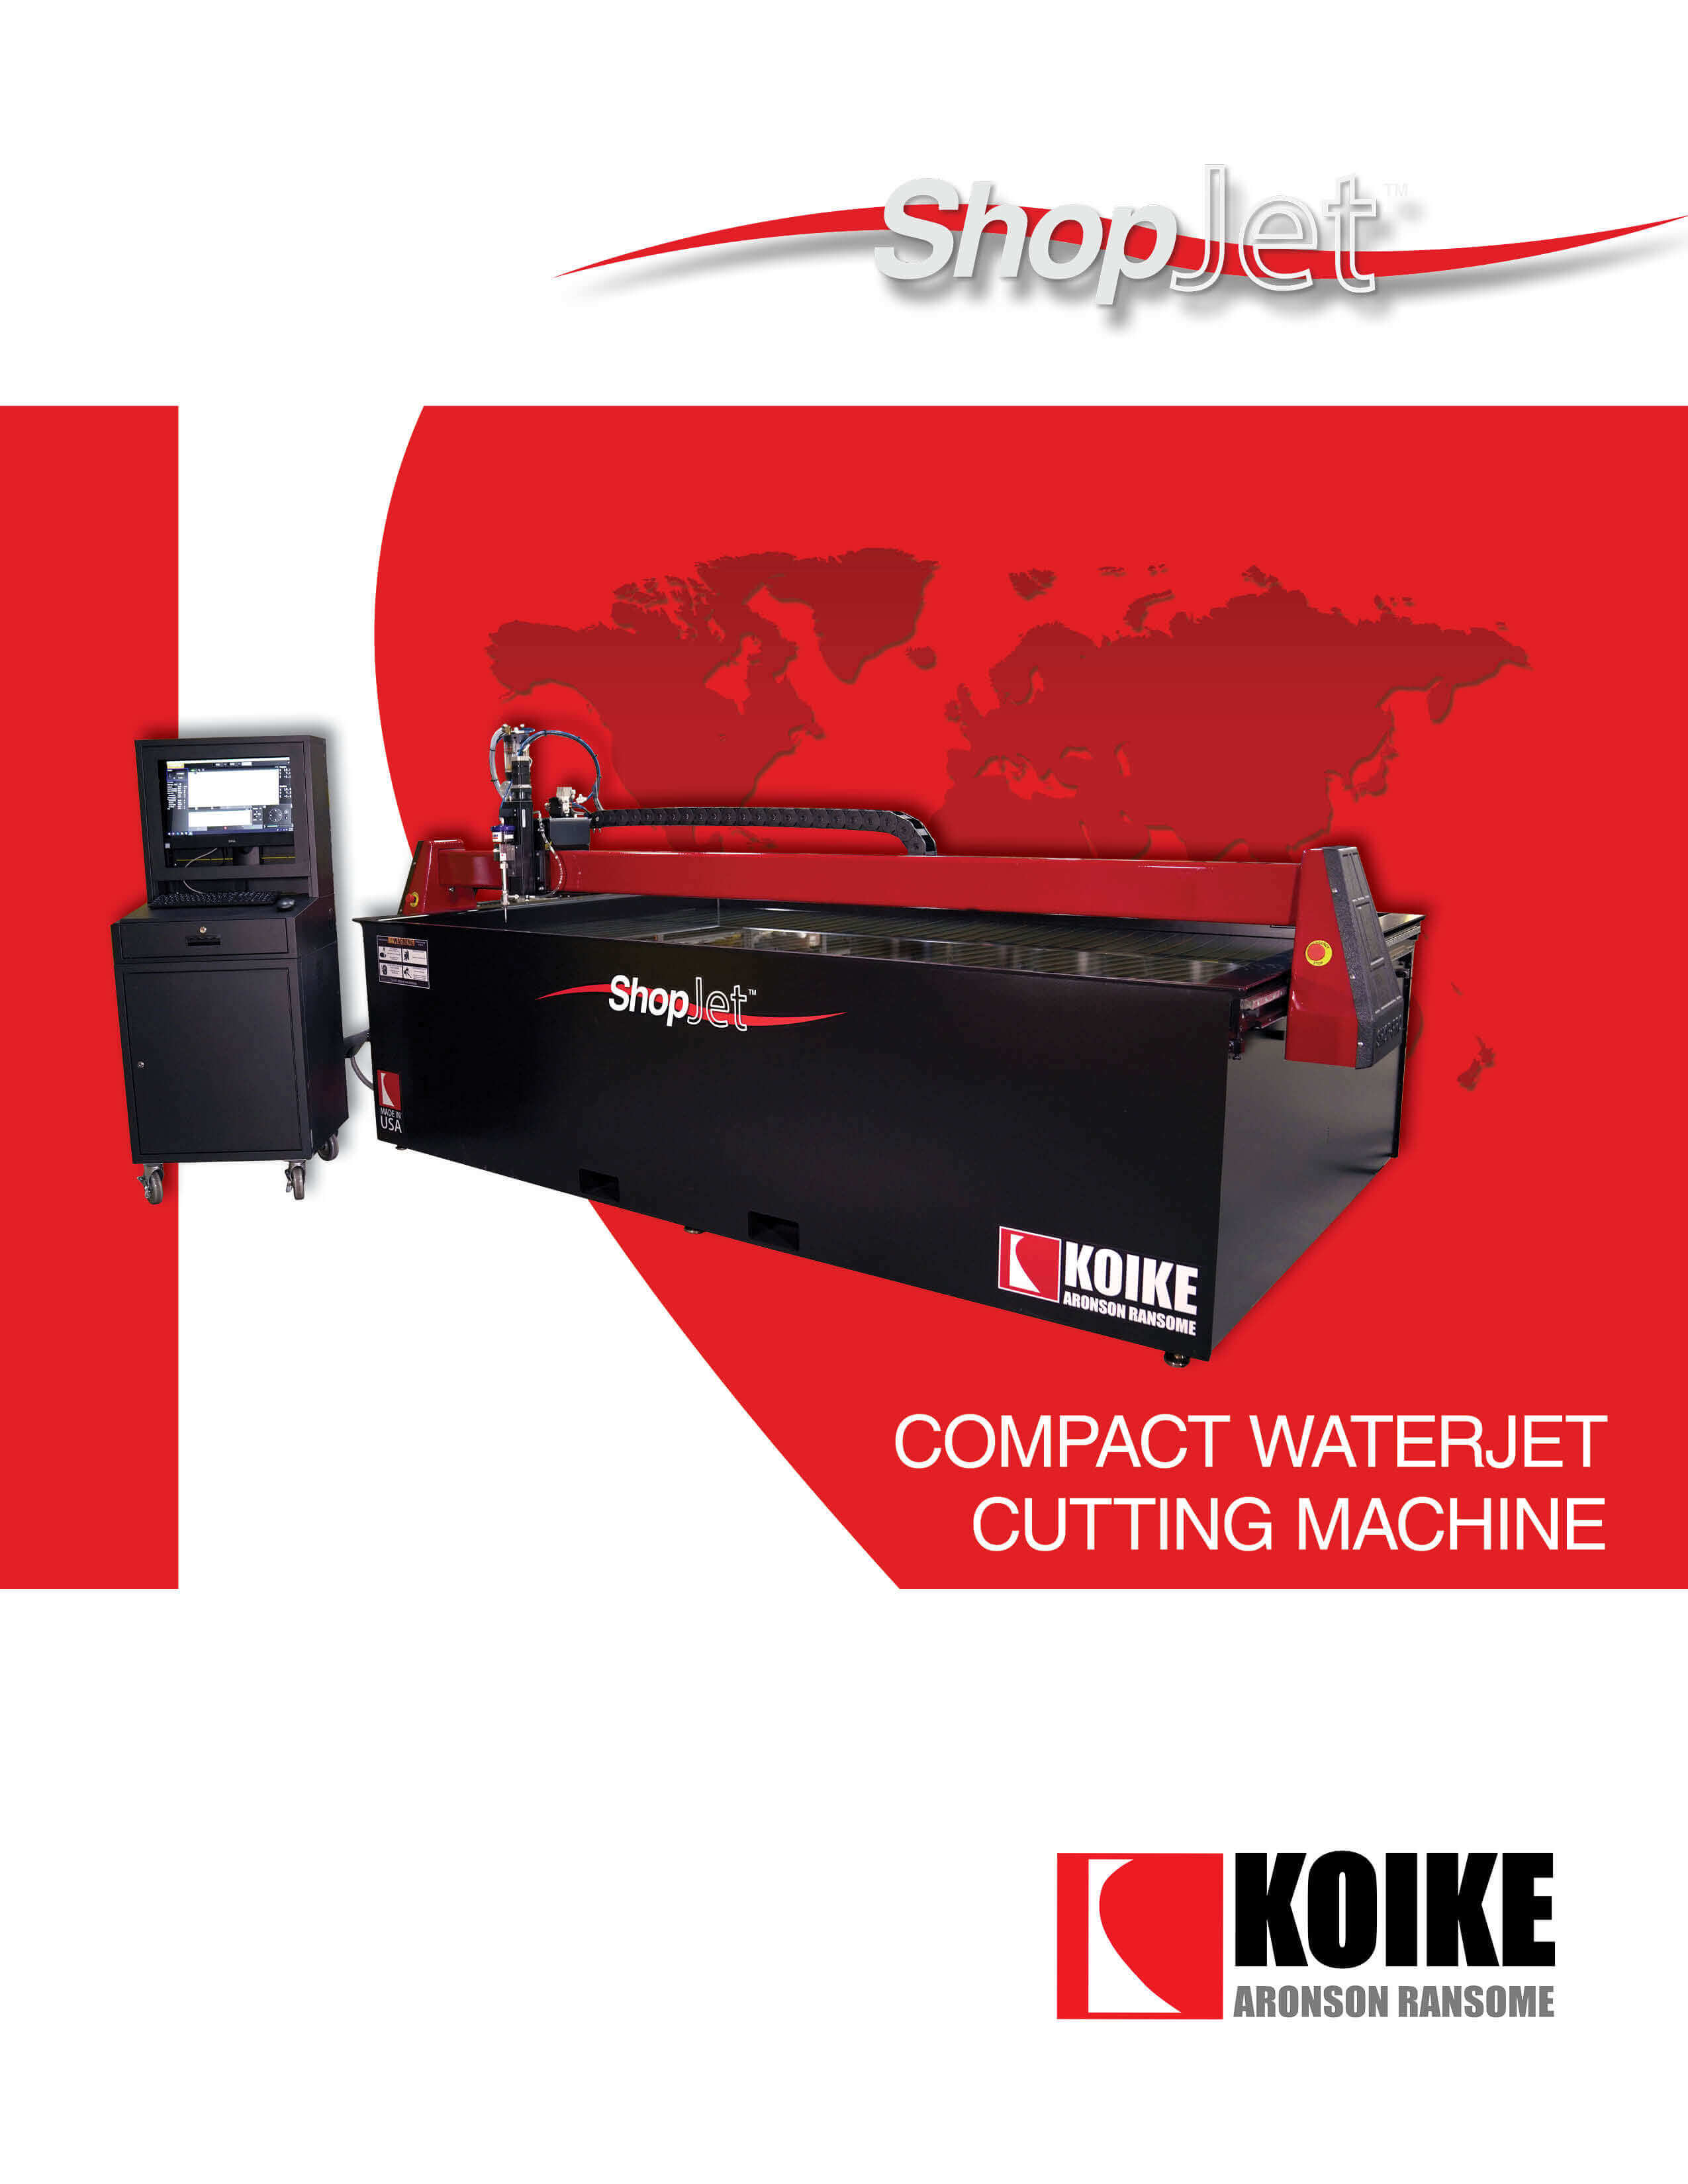 ShopJet, an affordable, compact waterjet cutting system with a solid steel structure and smaller footprint than others in its class